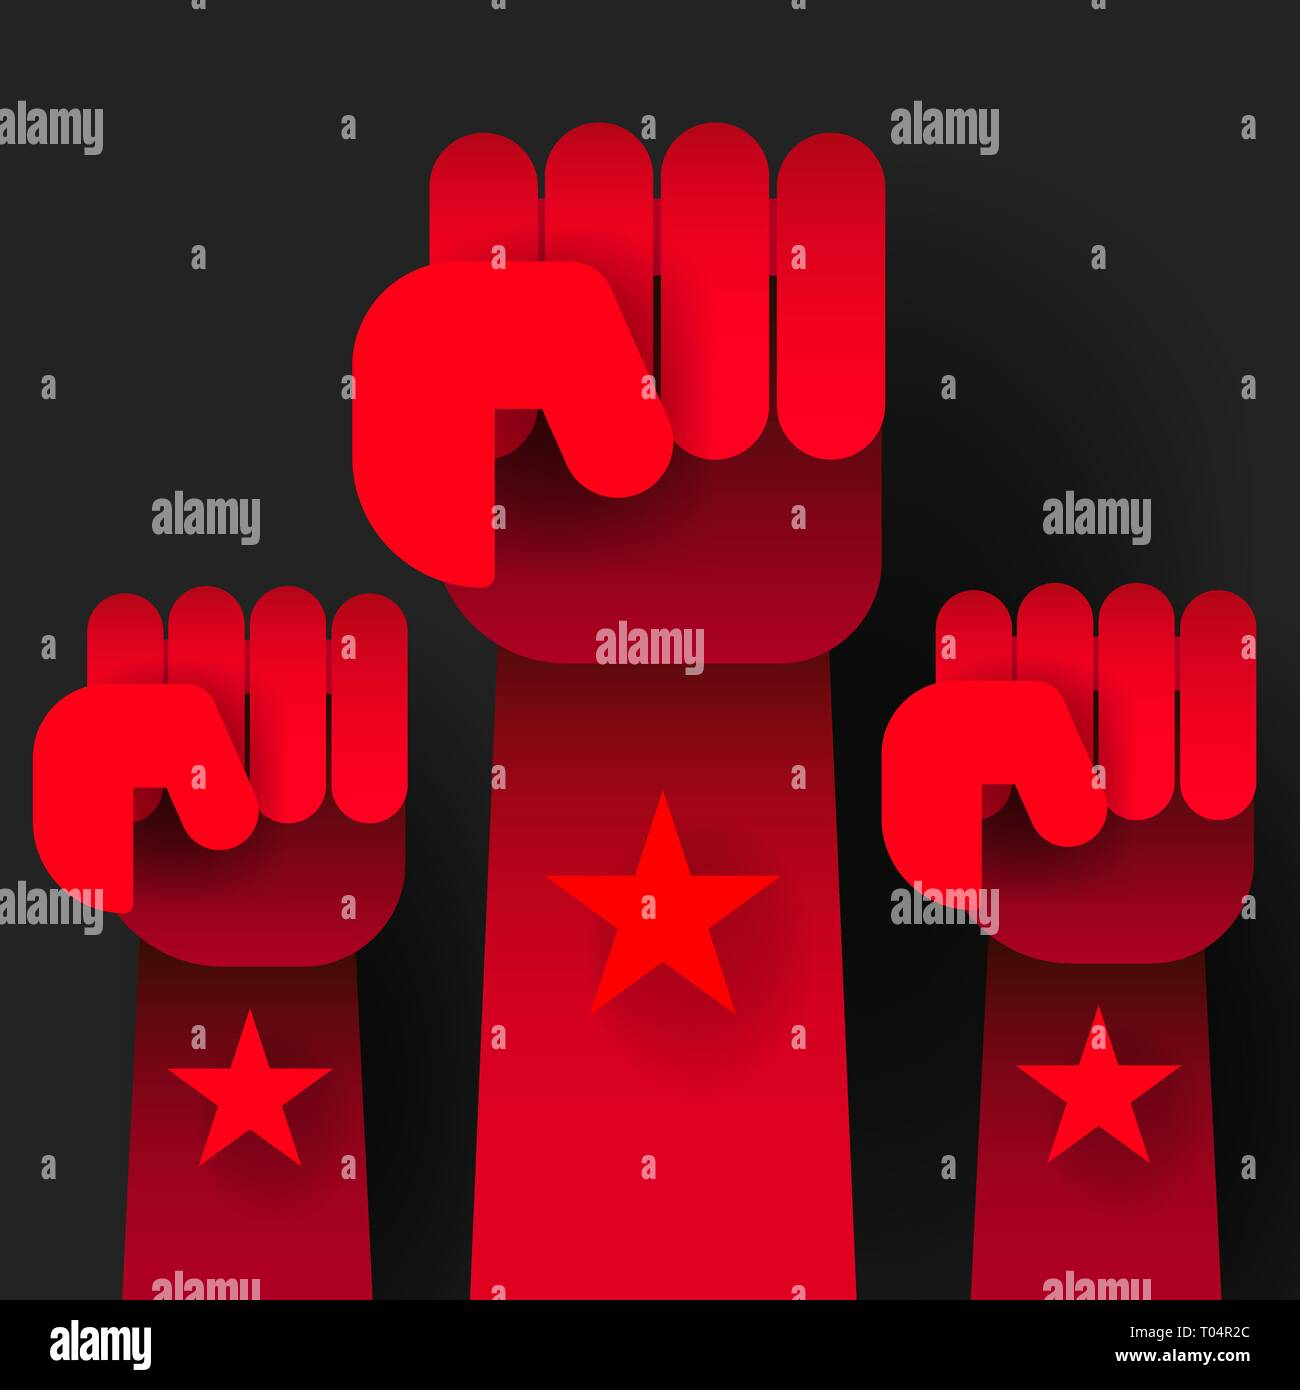 Propaganda Background Style Revolution Fist Raised In The Air. Clenched Fist - Stock Vector